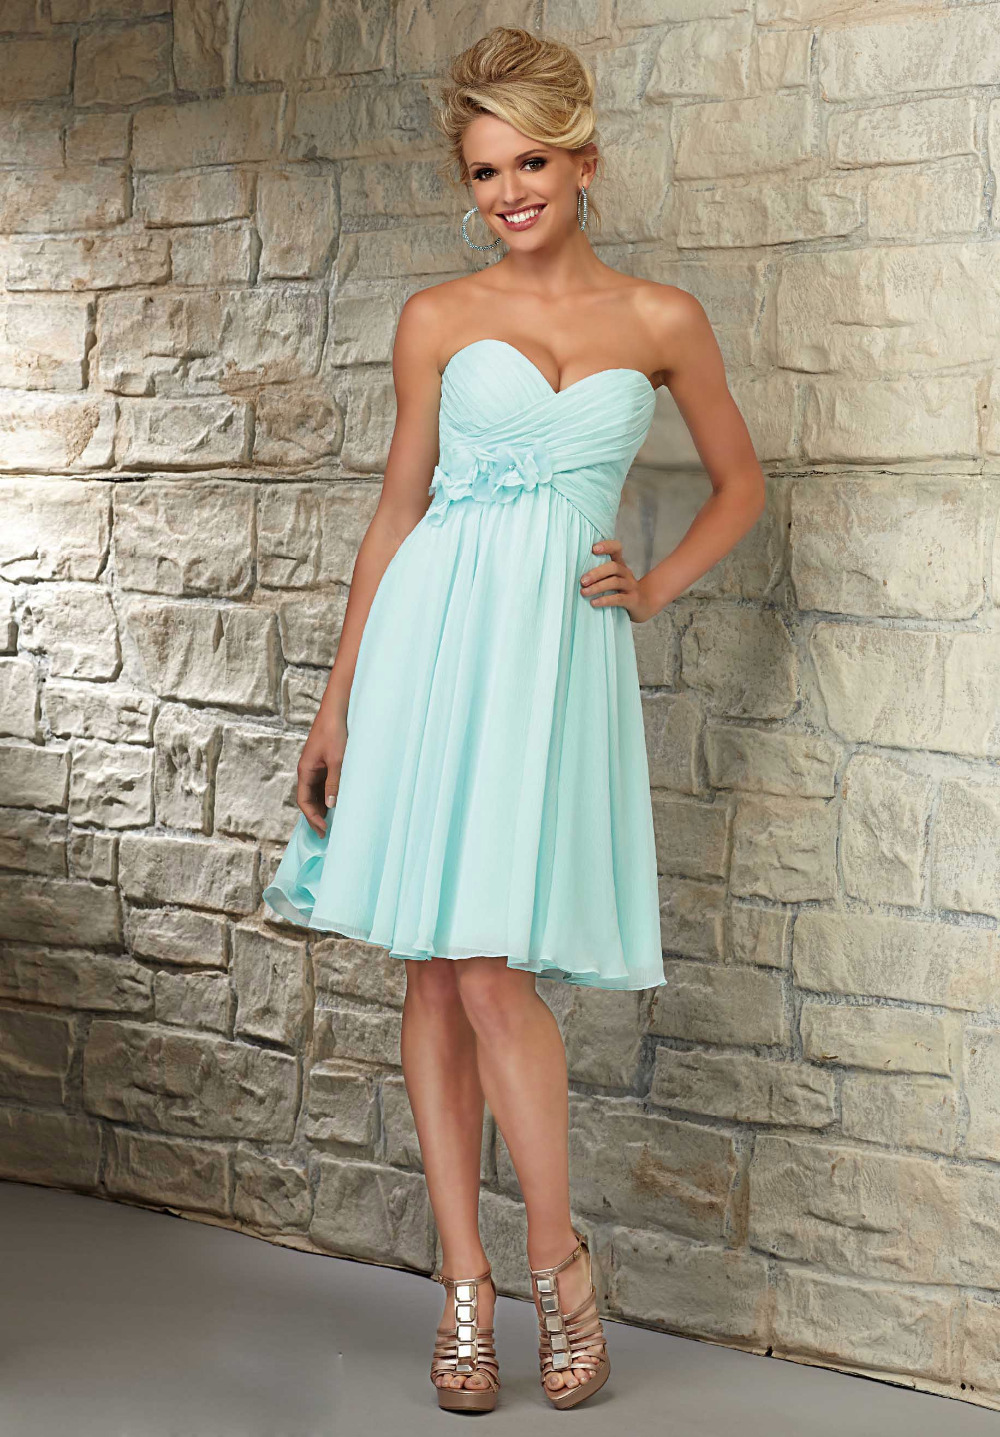 Tempting Sizecoral Keen Length Sweeart Sexy Bridesmaid Dresses From Mint Green Turquoise Short Chiffon Bridesmaid Dresses Beach Mint Green Turquoise Short Chiffon Bridesmaid Dresses Beach